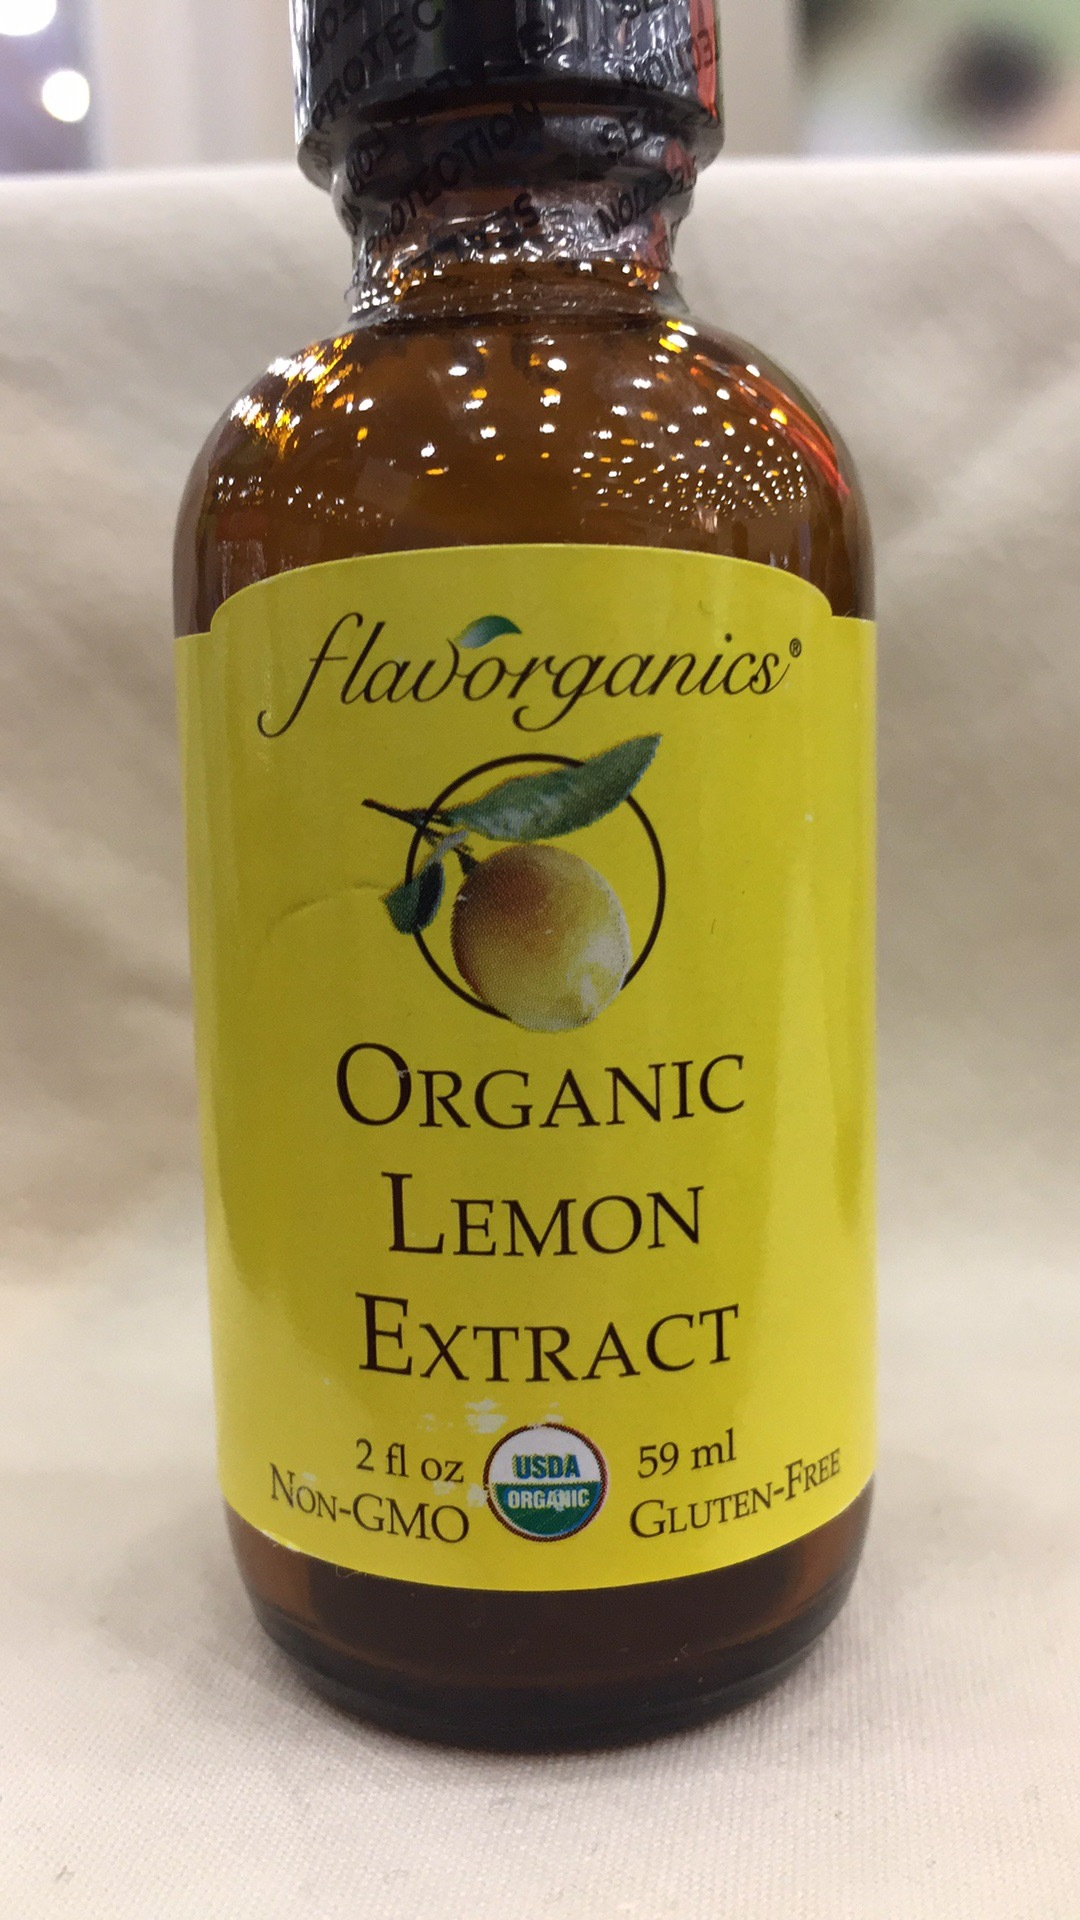 Organic Lemon Extract | The Natural Products Brands Directory